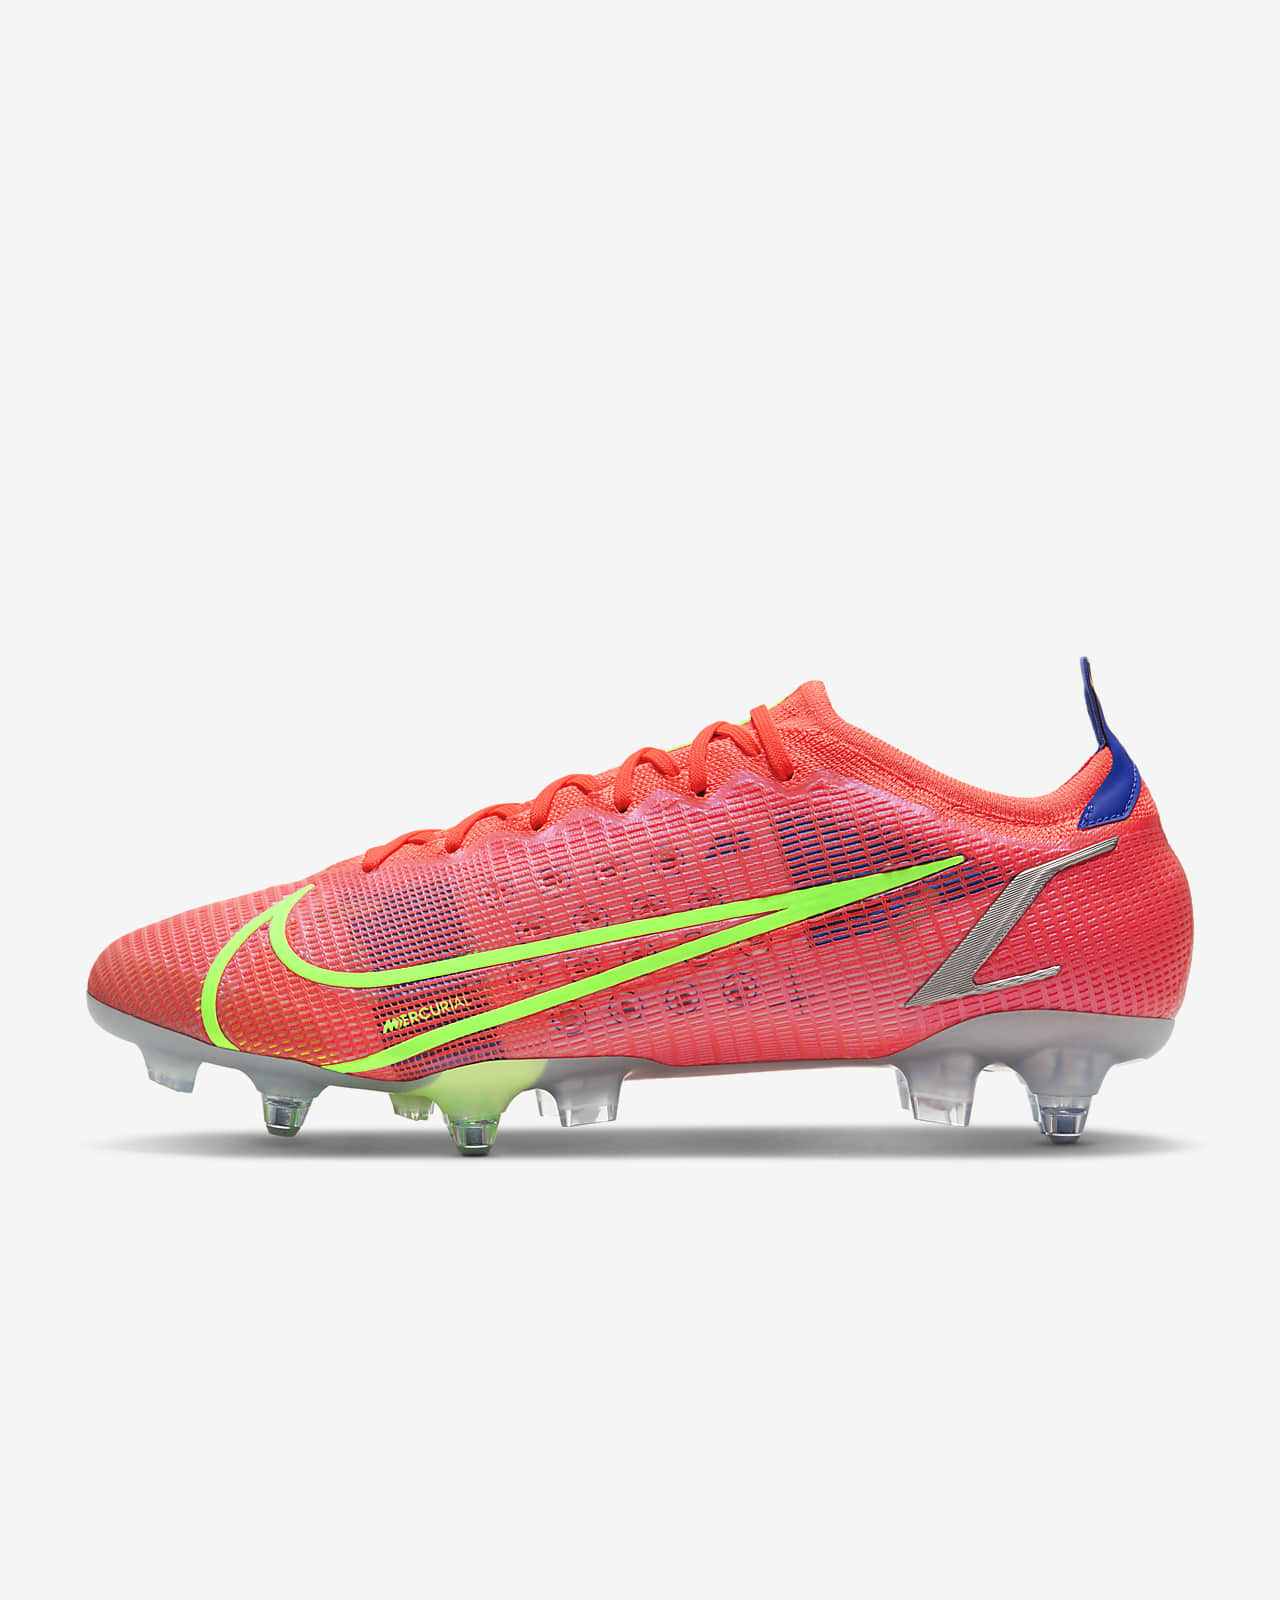 Nike Mercurial Vapor 14 Elite SG-Pro AC Soft-Ground Football Boot